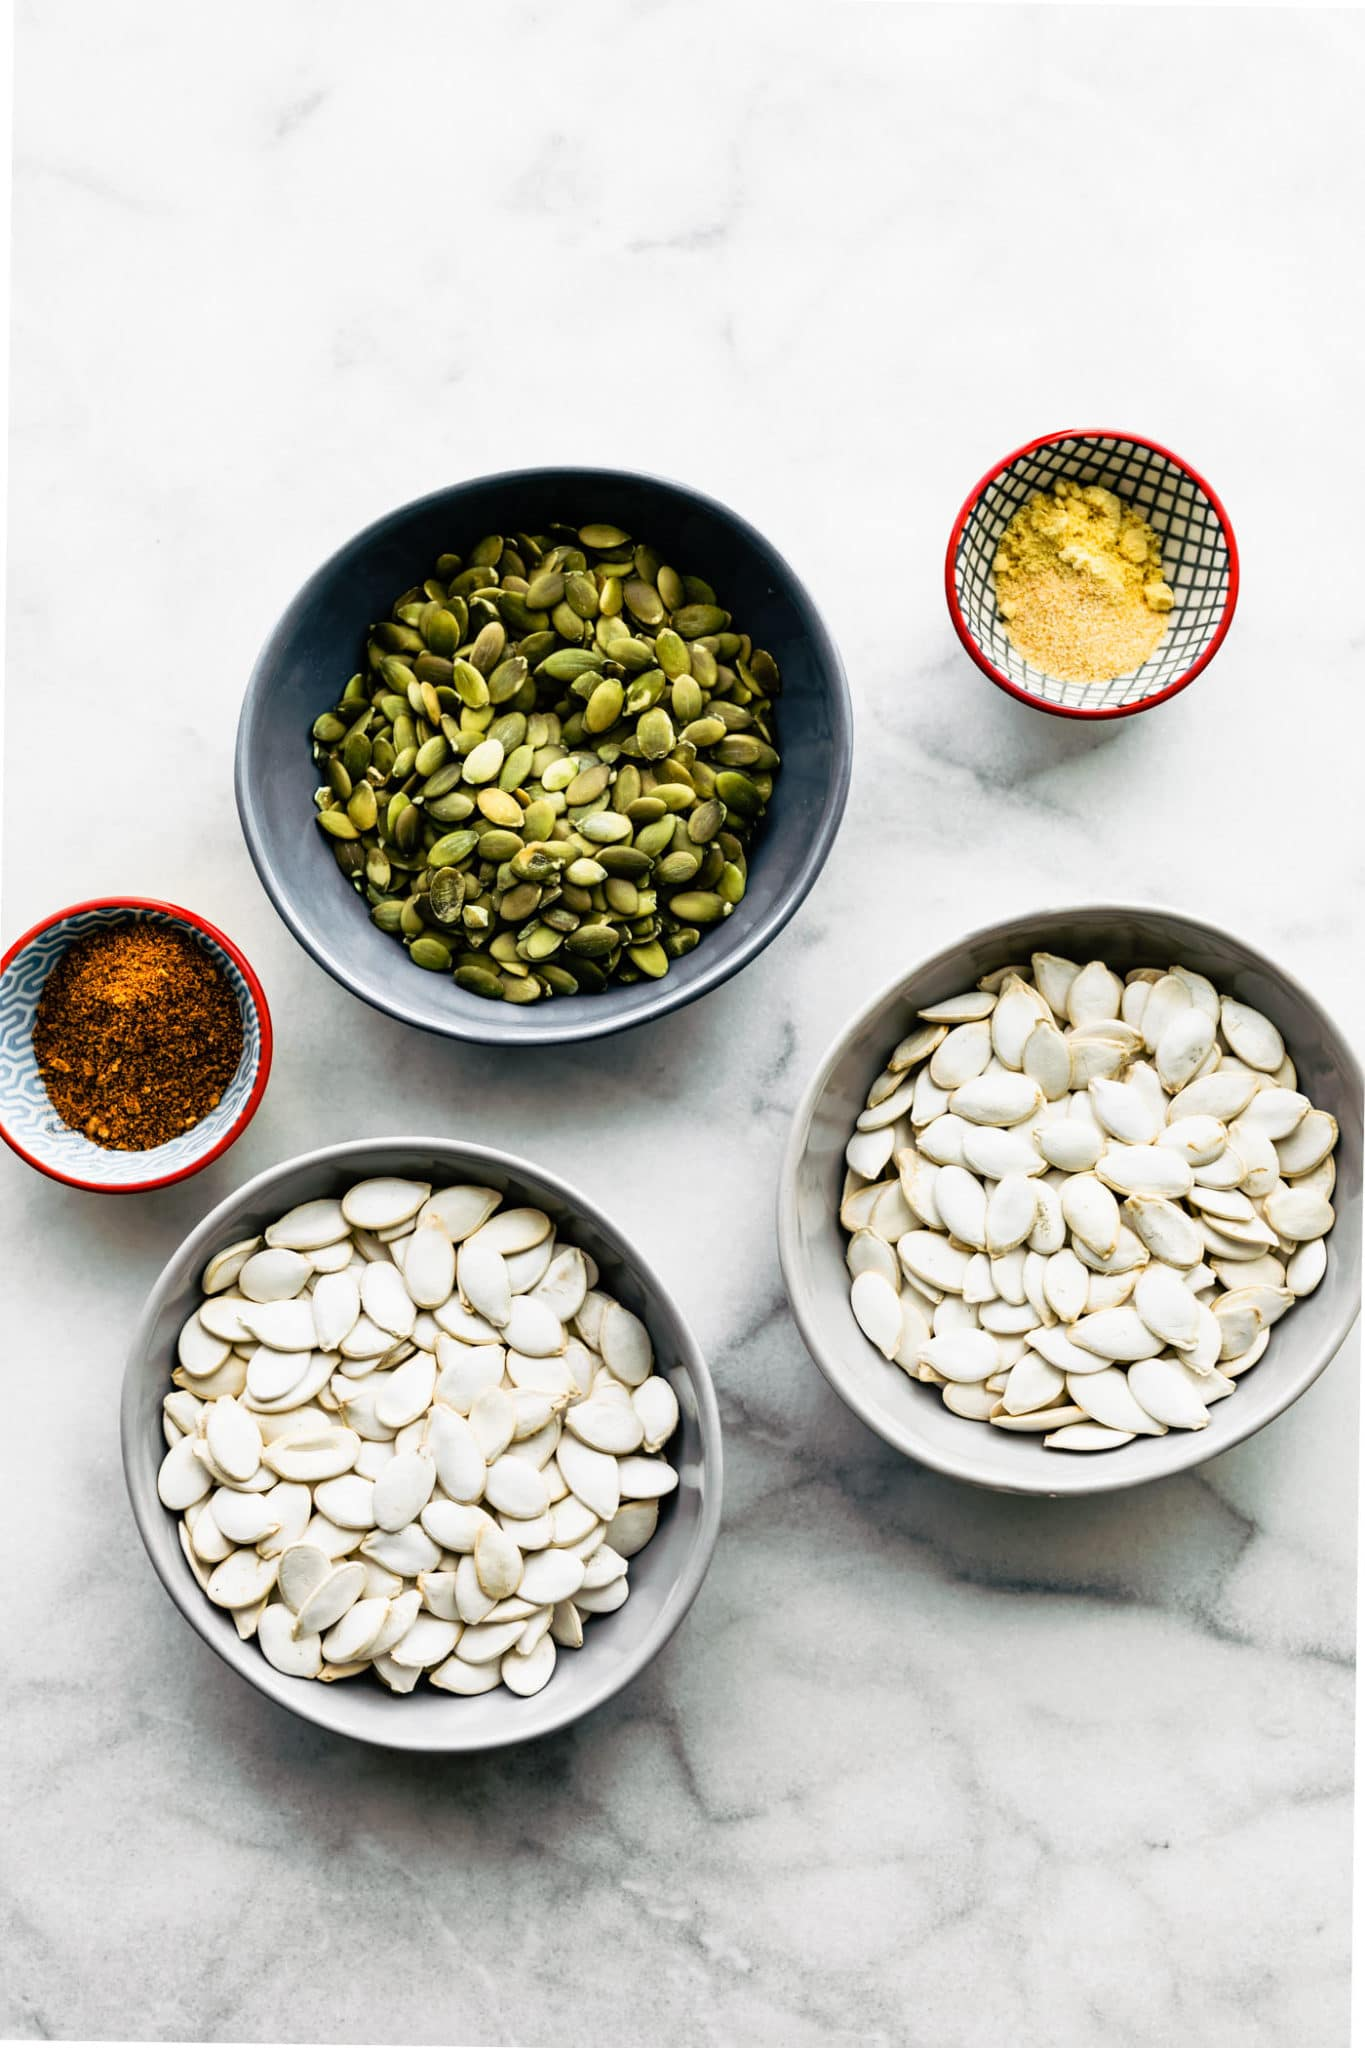 2 bowls of clean pumpkin seeds, 1 bowl of pepitas, and two small bowls with seasonings